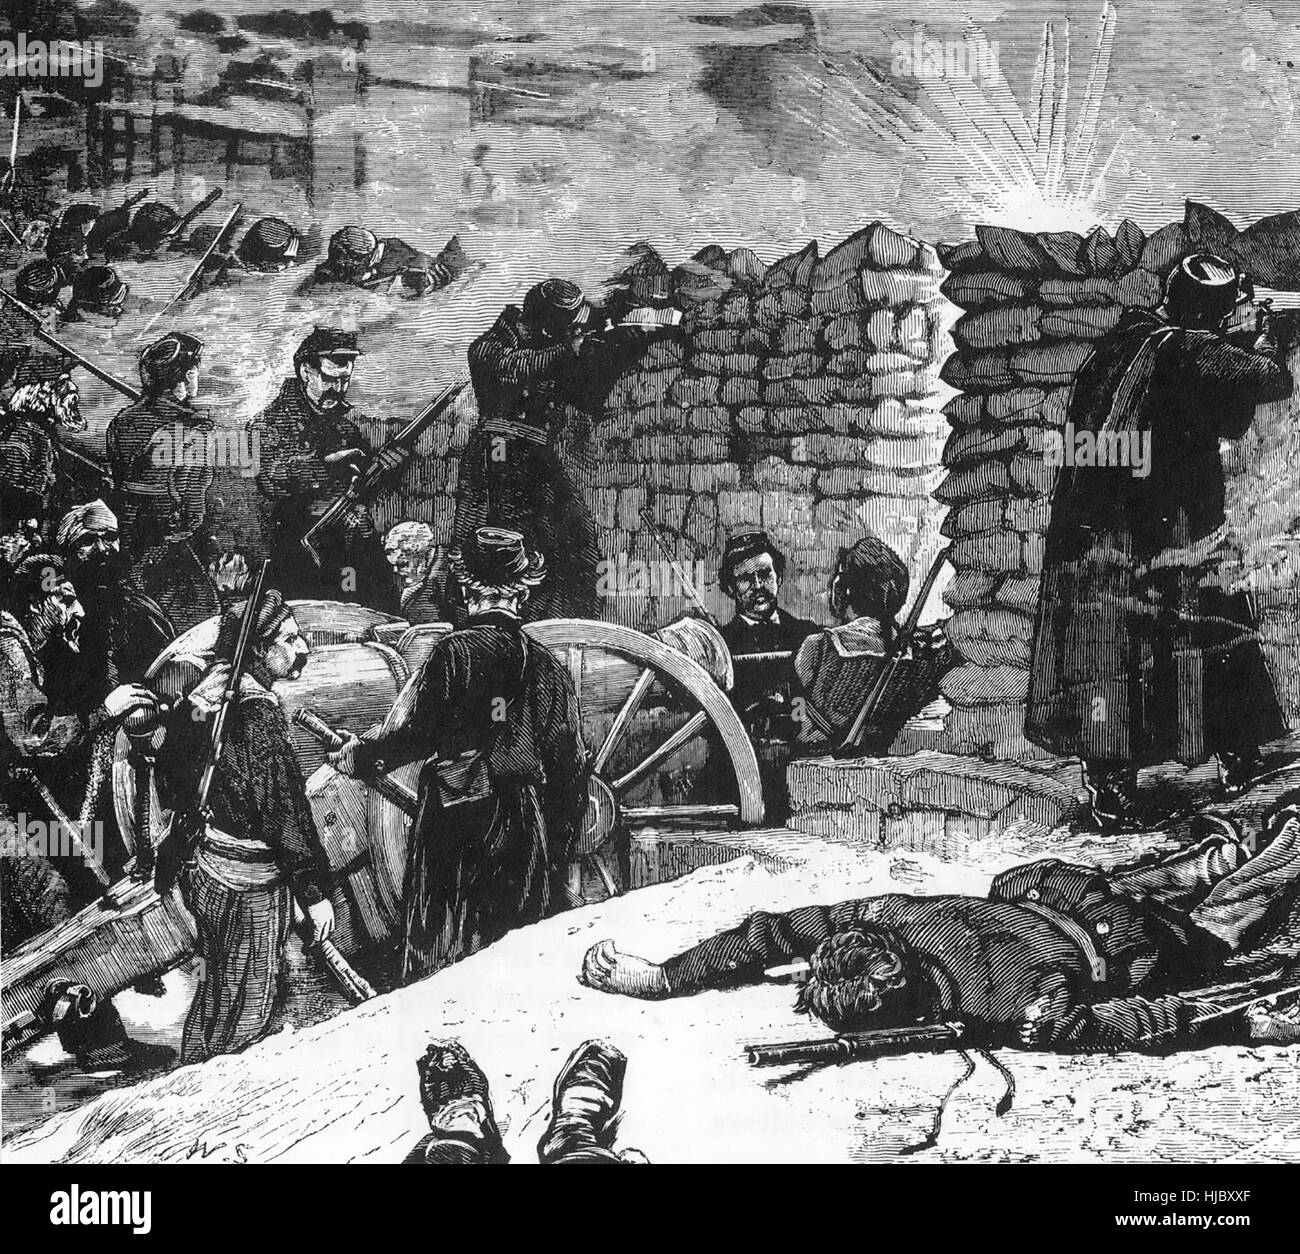 FRANMCO-PRUSSIAN WAR 1871 Commune soldiers at the barricades - Stock Image